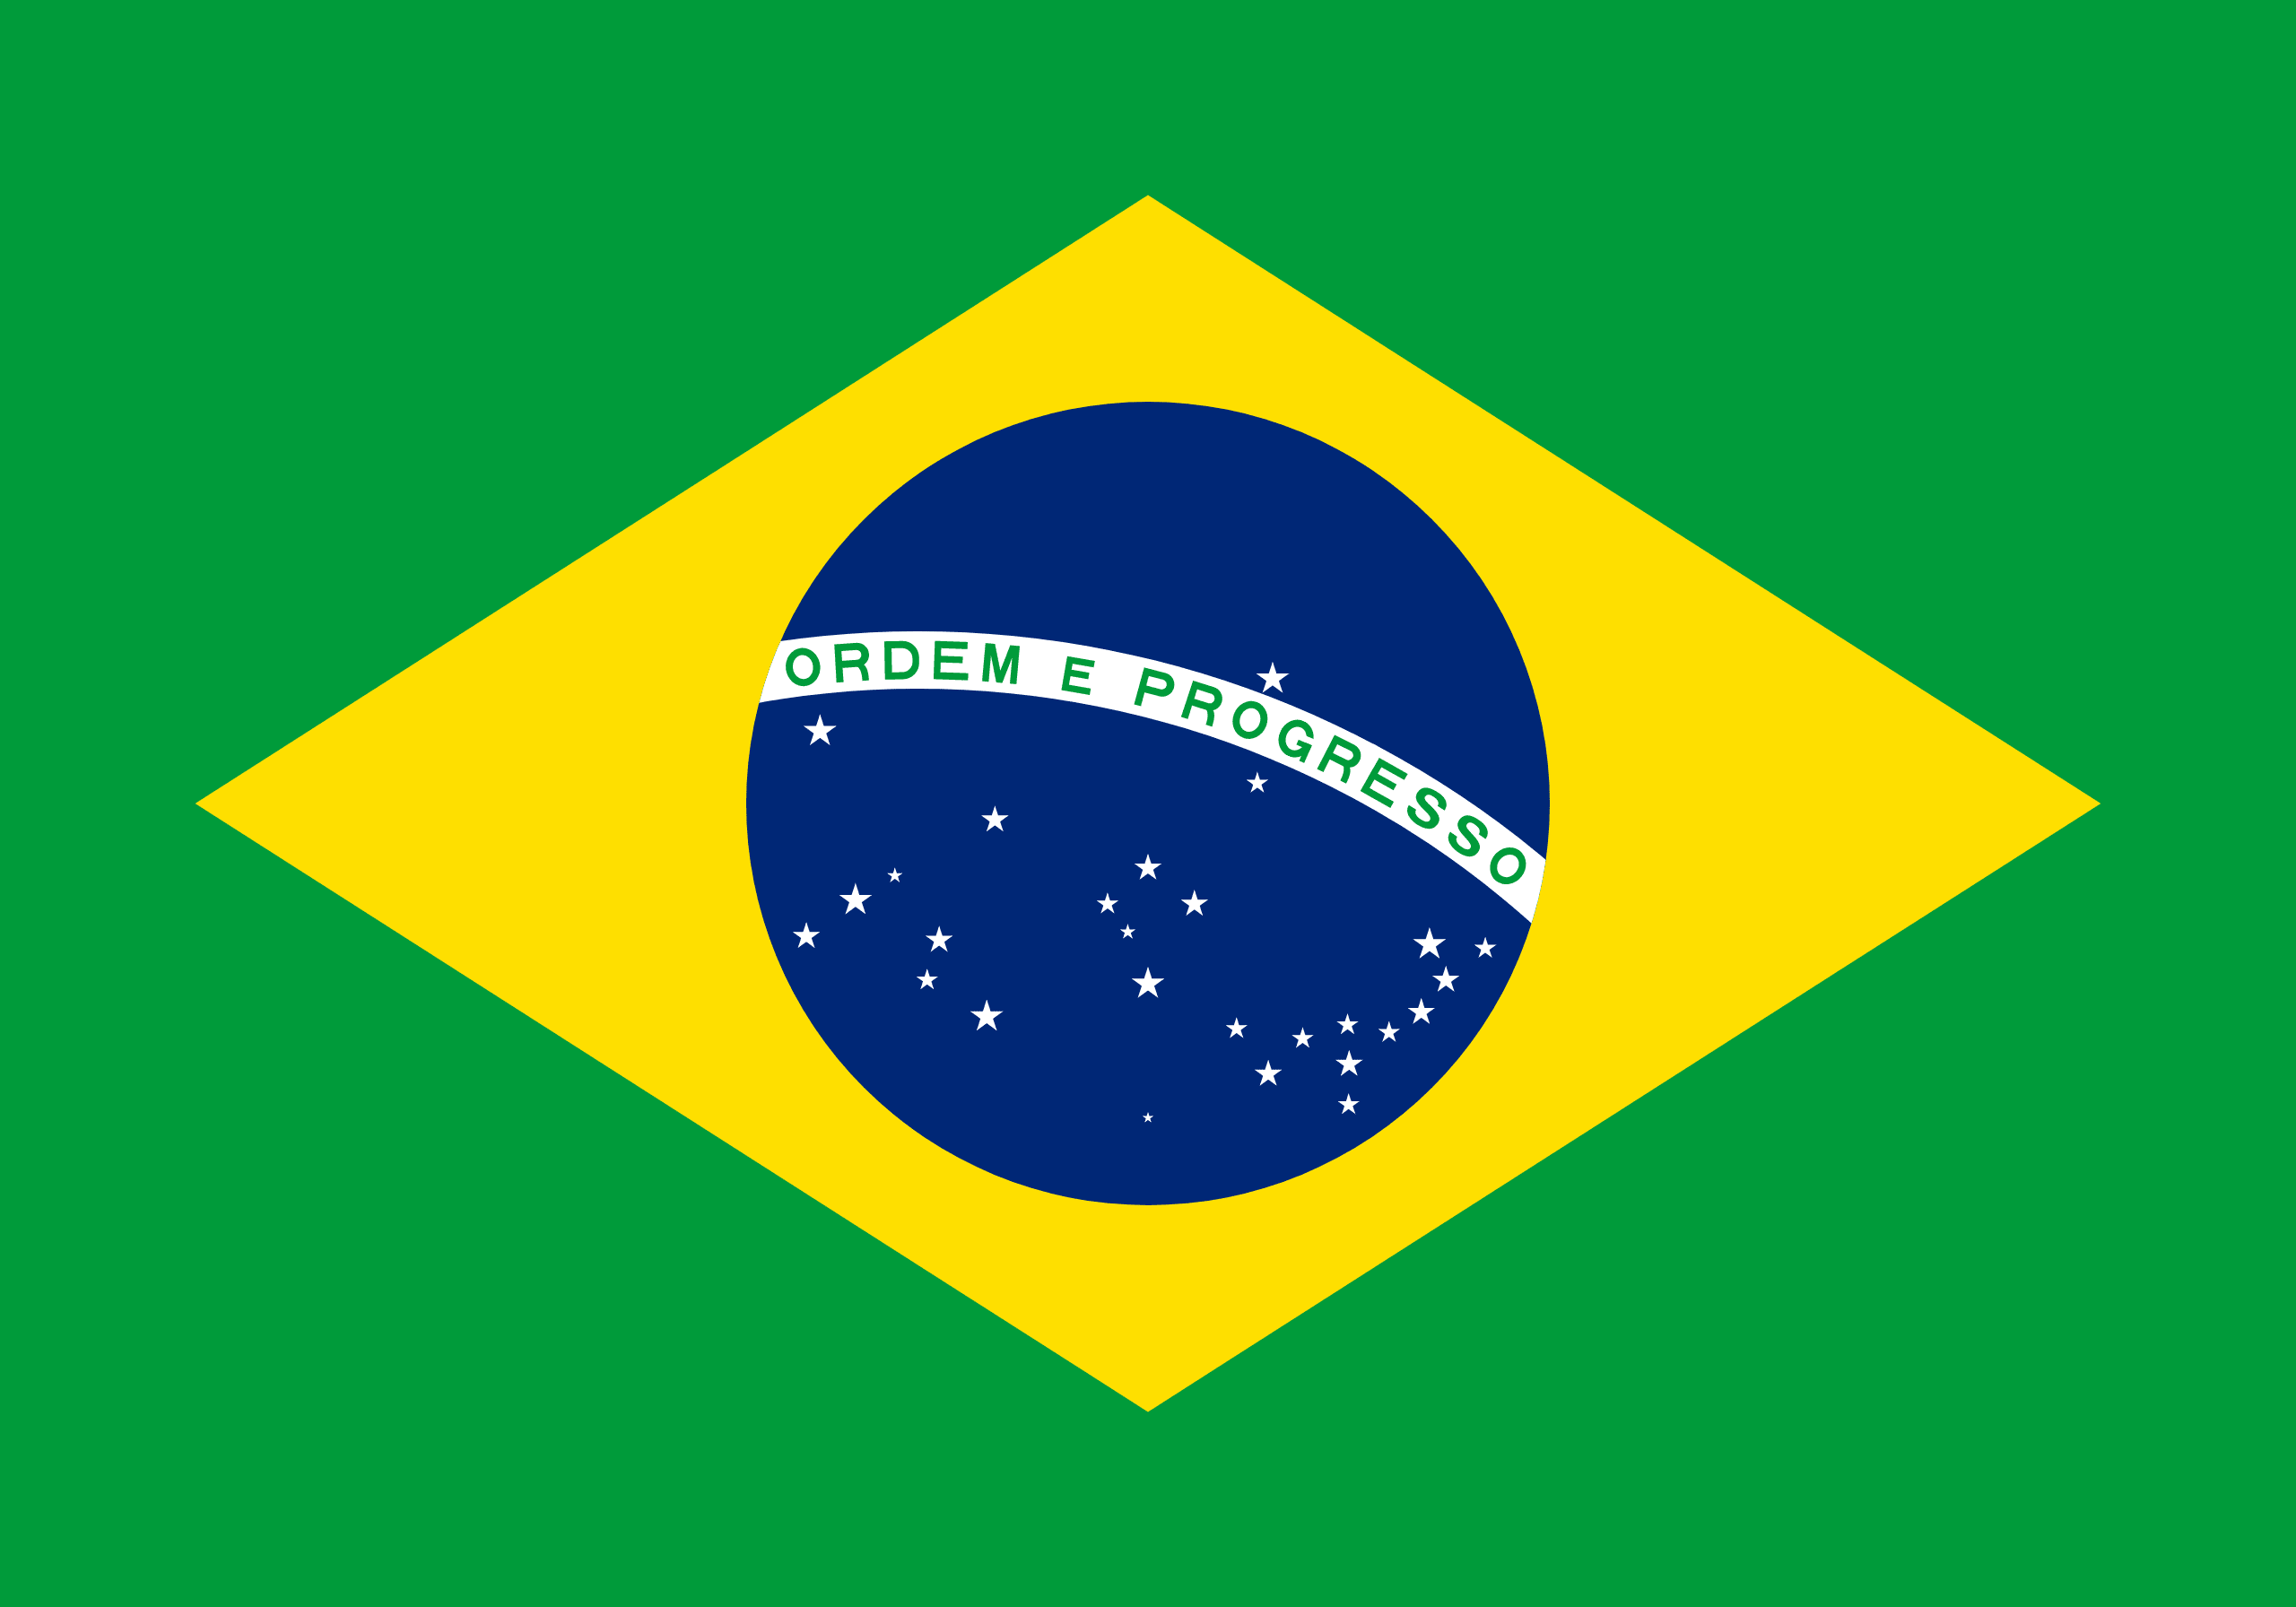 Brazil flags of countries download a flag or use it on websites biocorpaavc Image collections